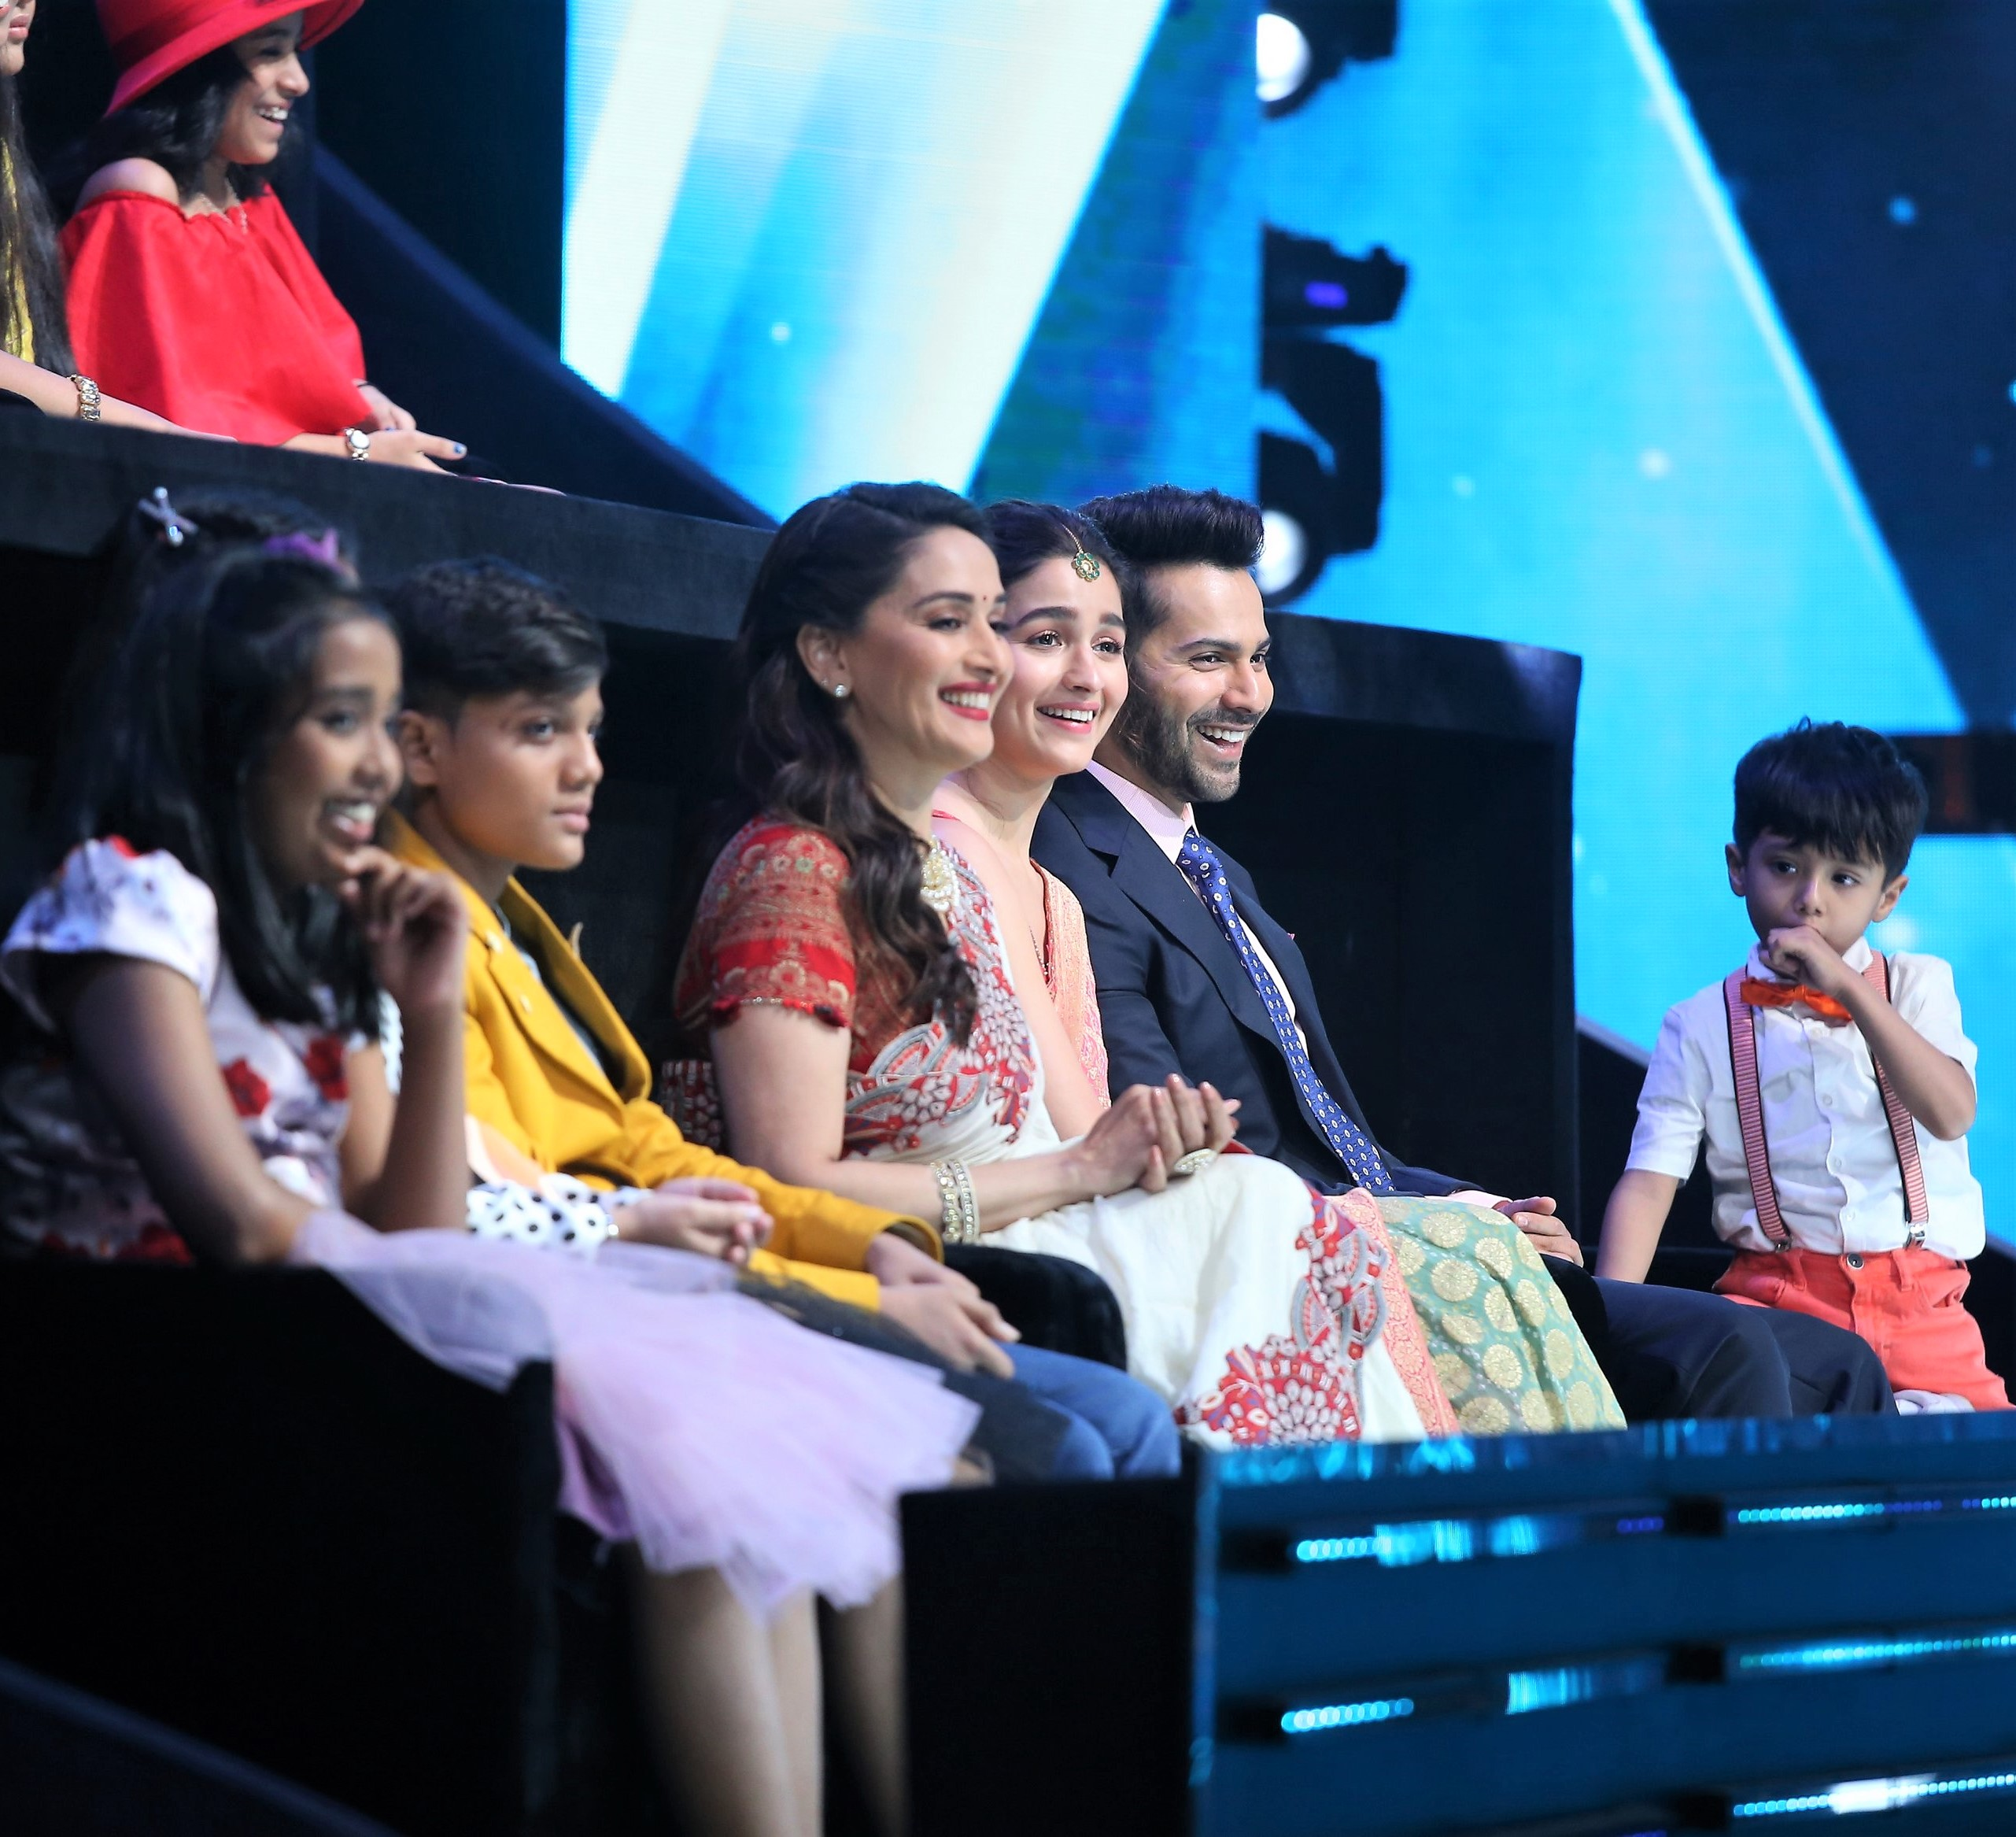 Madhuri Dixit, Alia Bhatt and Varun Dhawan Take To The Stage For 'Kalank' Promos